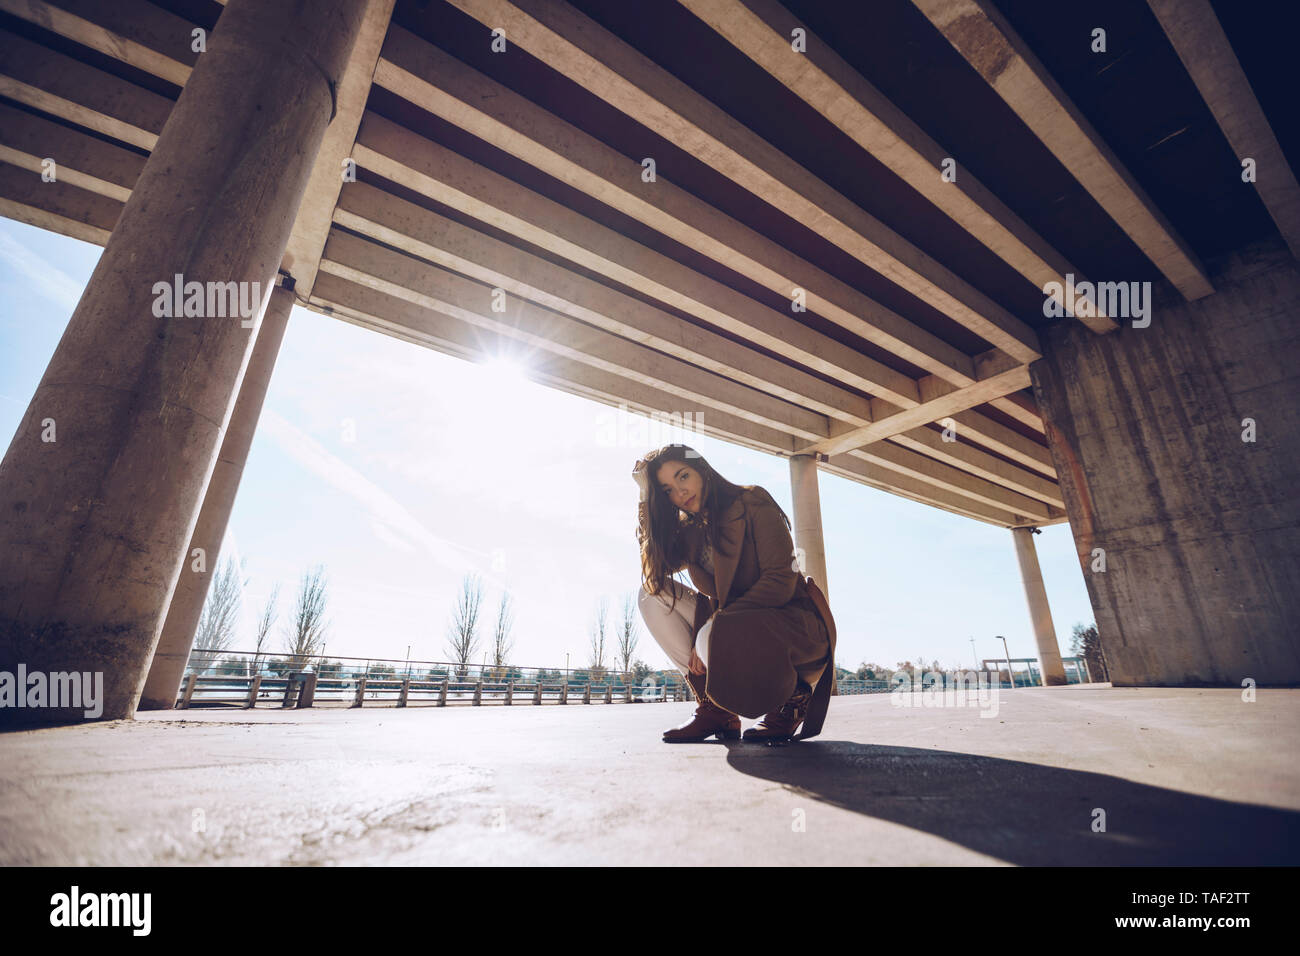 Young woman crouching at an underpass in backlight - Stock Image